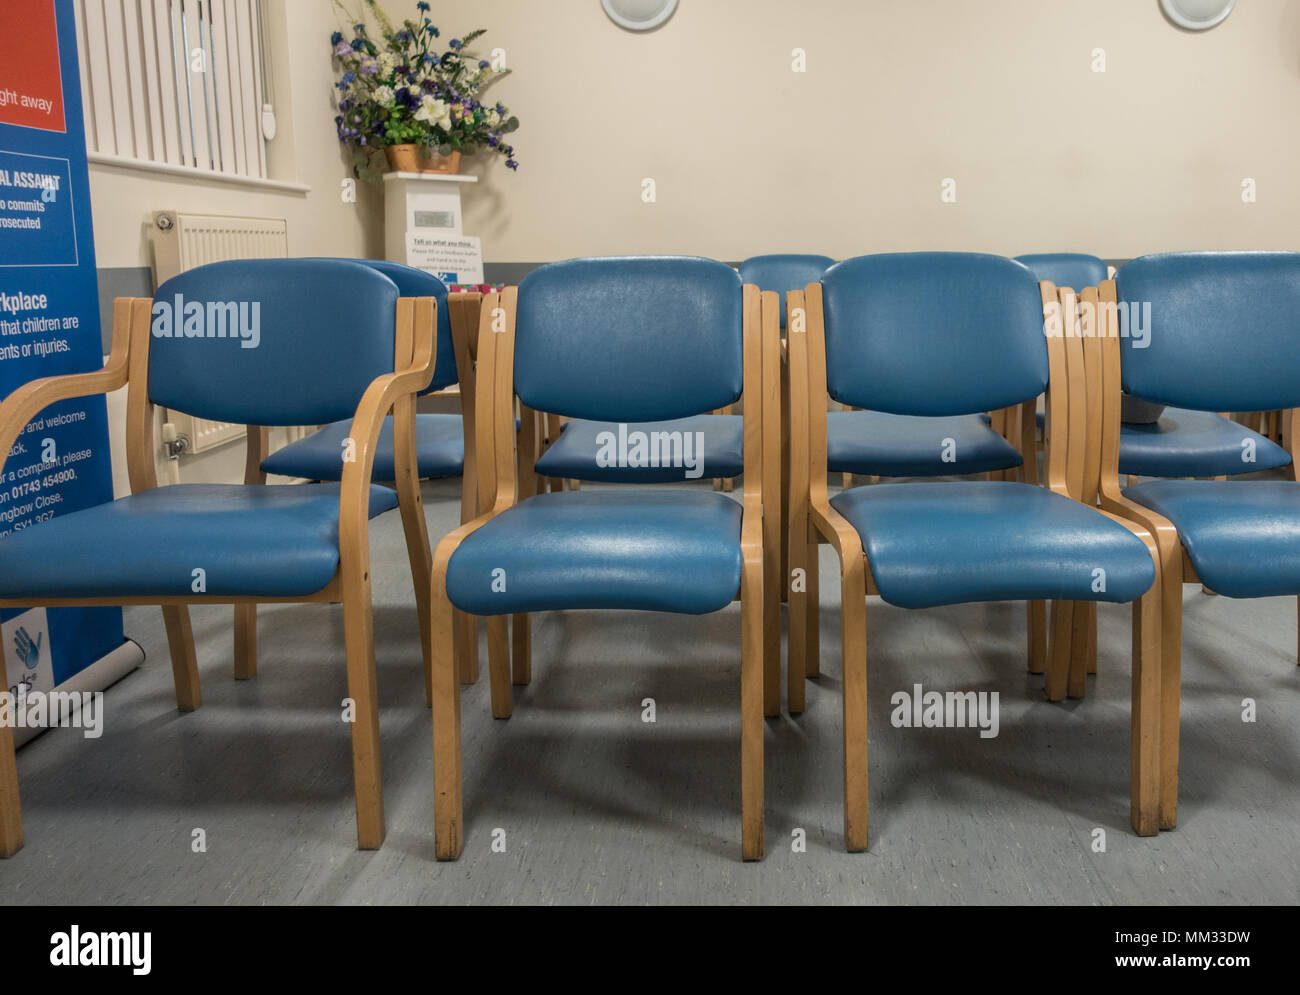 Doctors Waiting Room High Resolution Stock Photography And Images Alamy